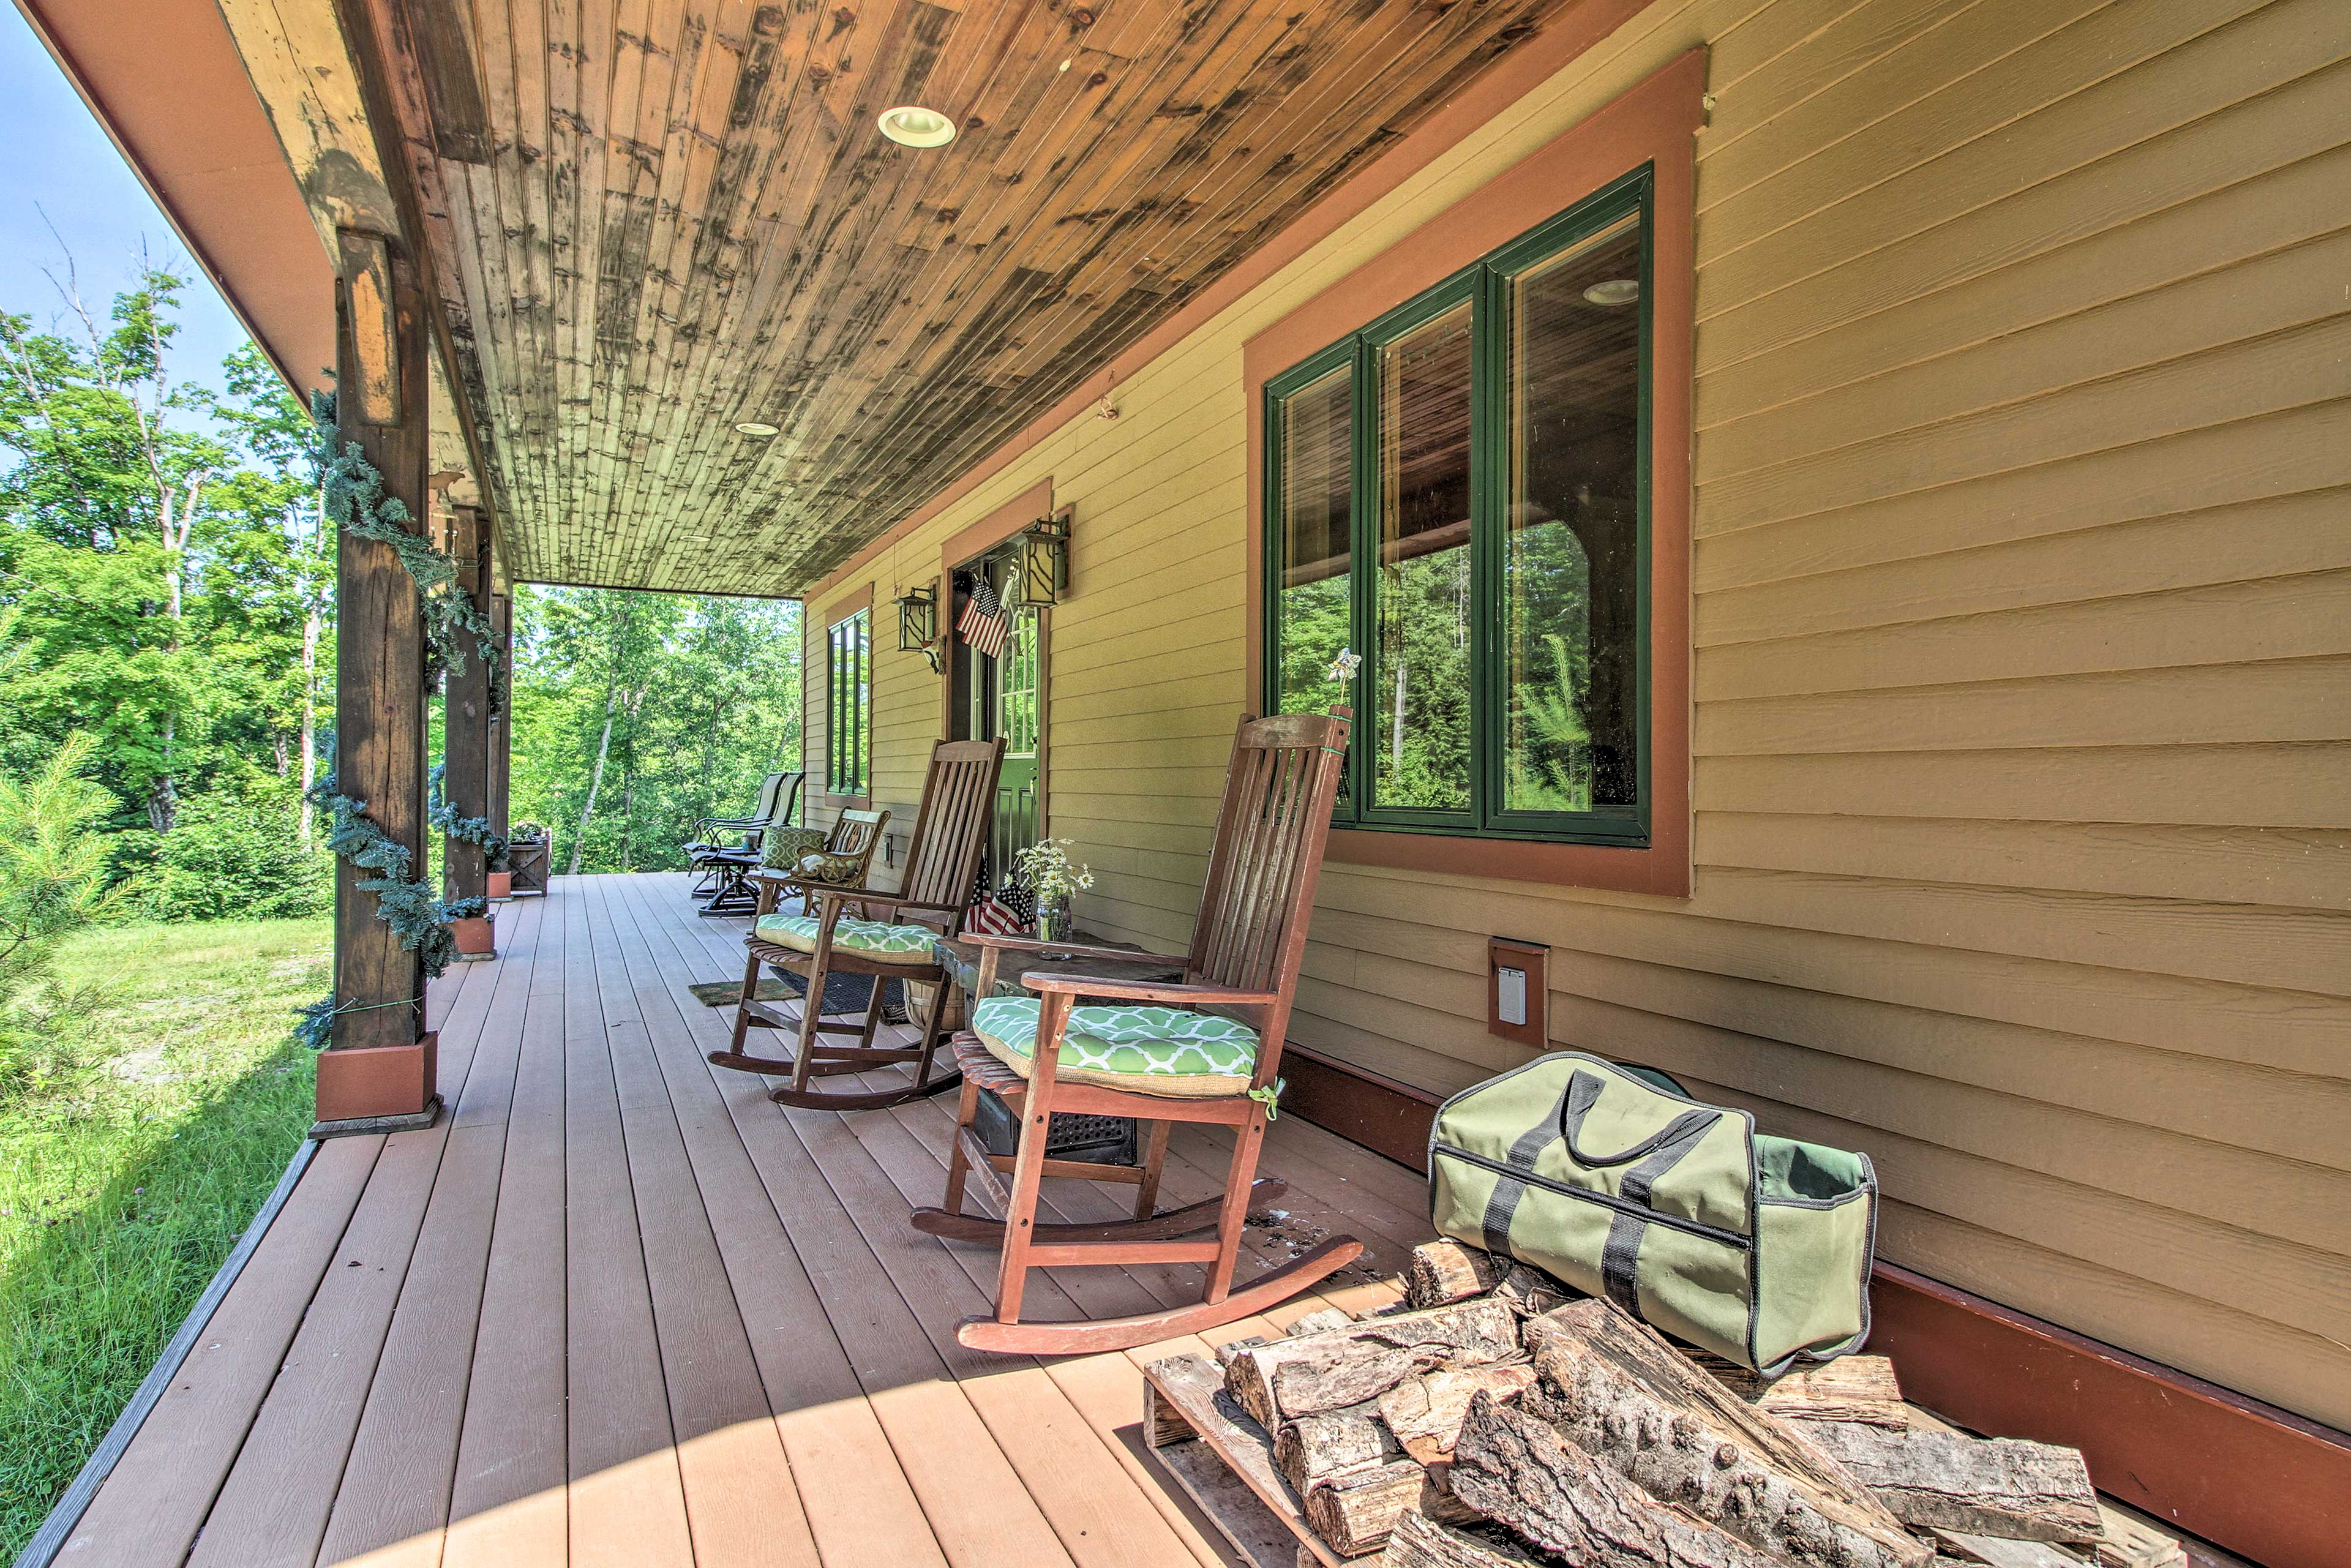 Relax on the rocking chairs.